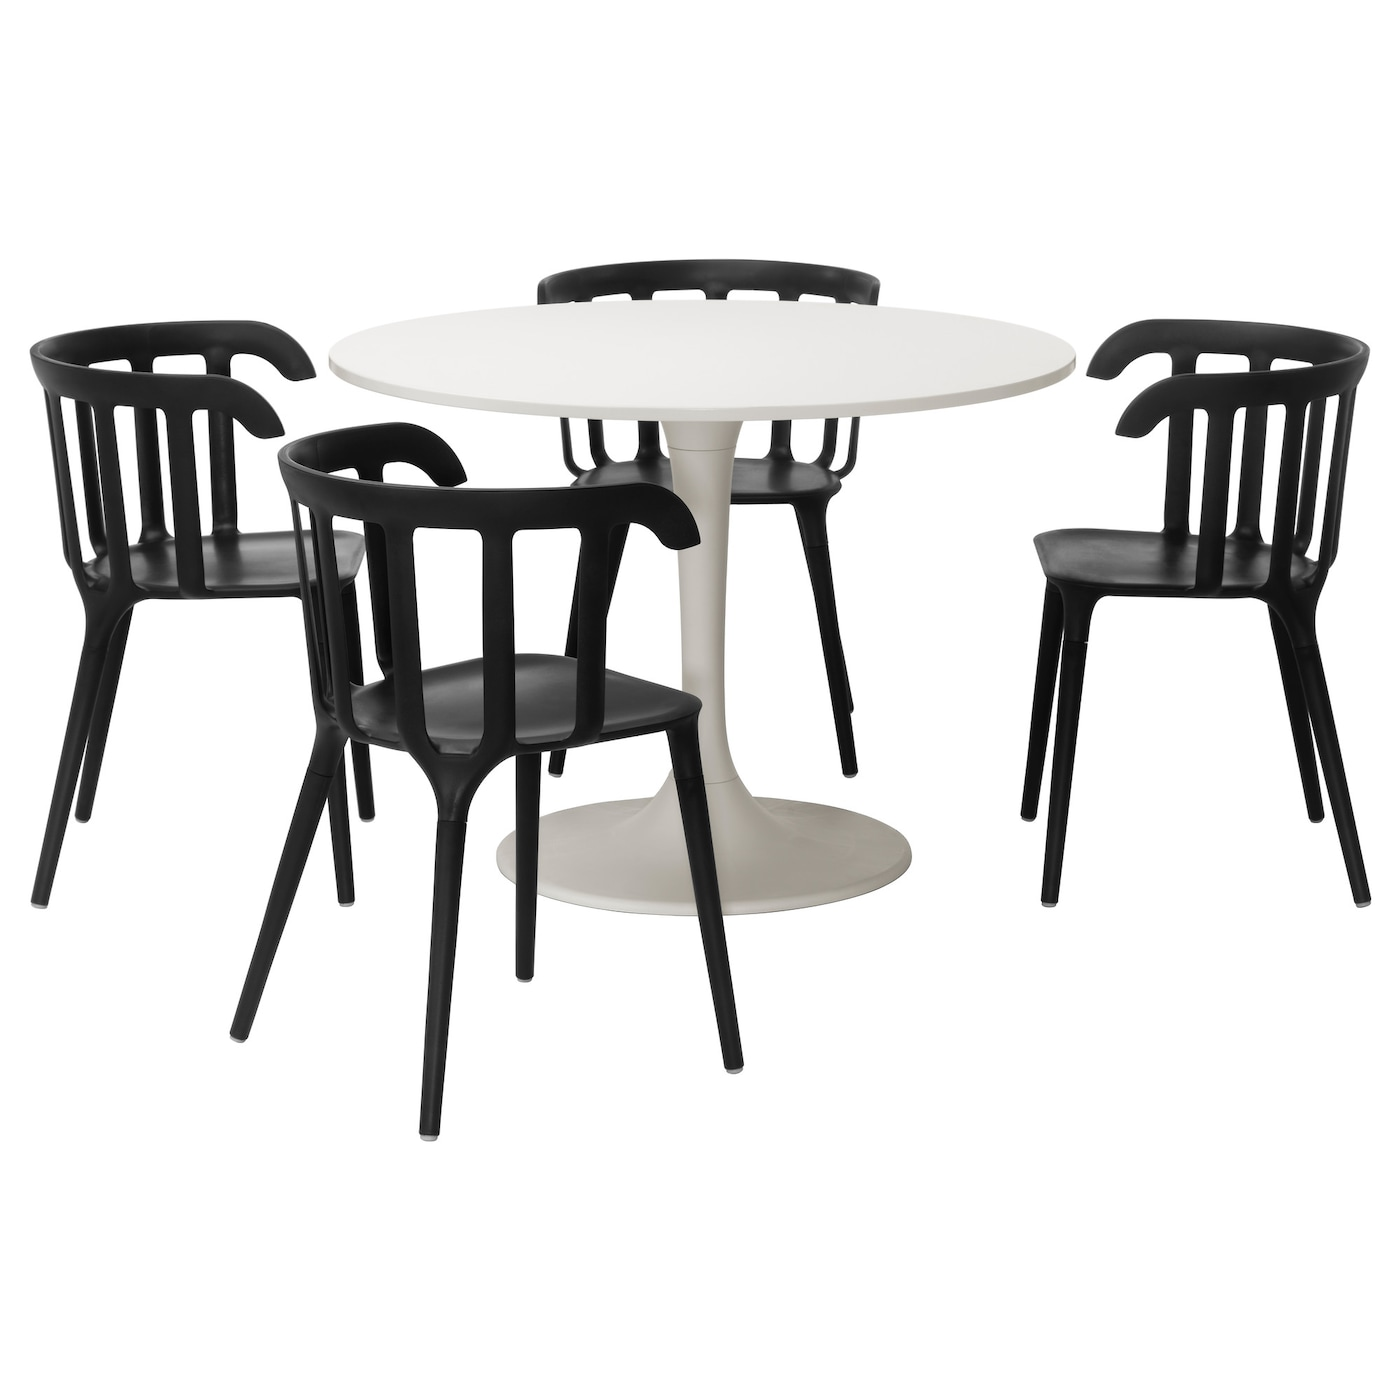 IKEA DOCKSTA/IKEA PS 2012 table and 4 chairs You sit comfortably thanks to the armrests.